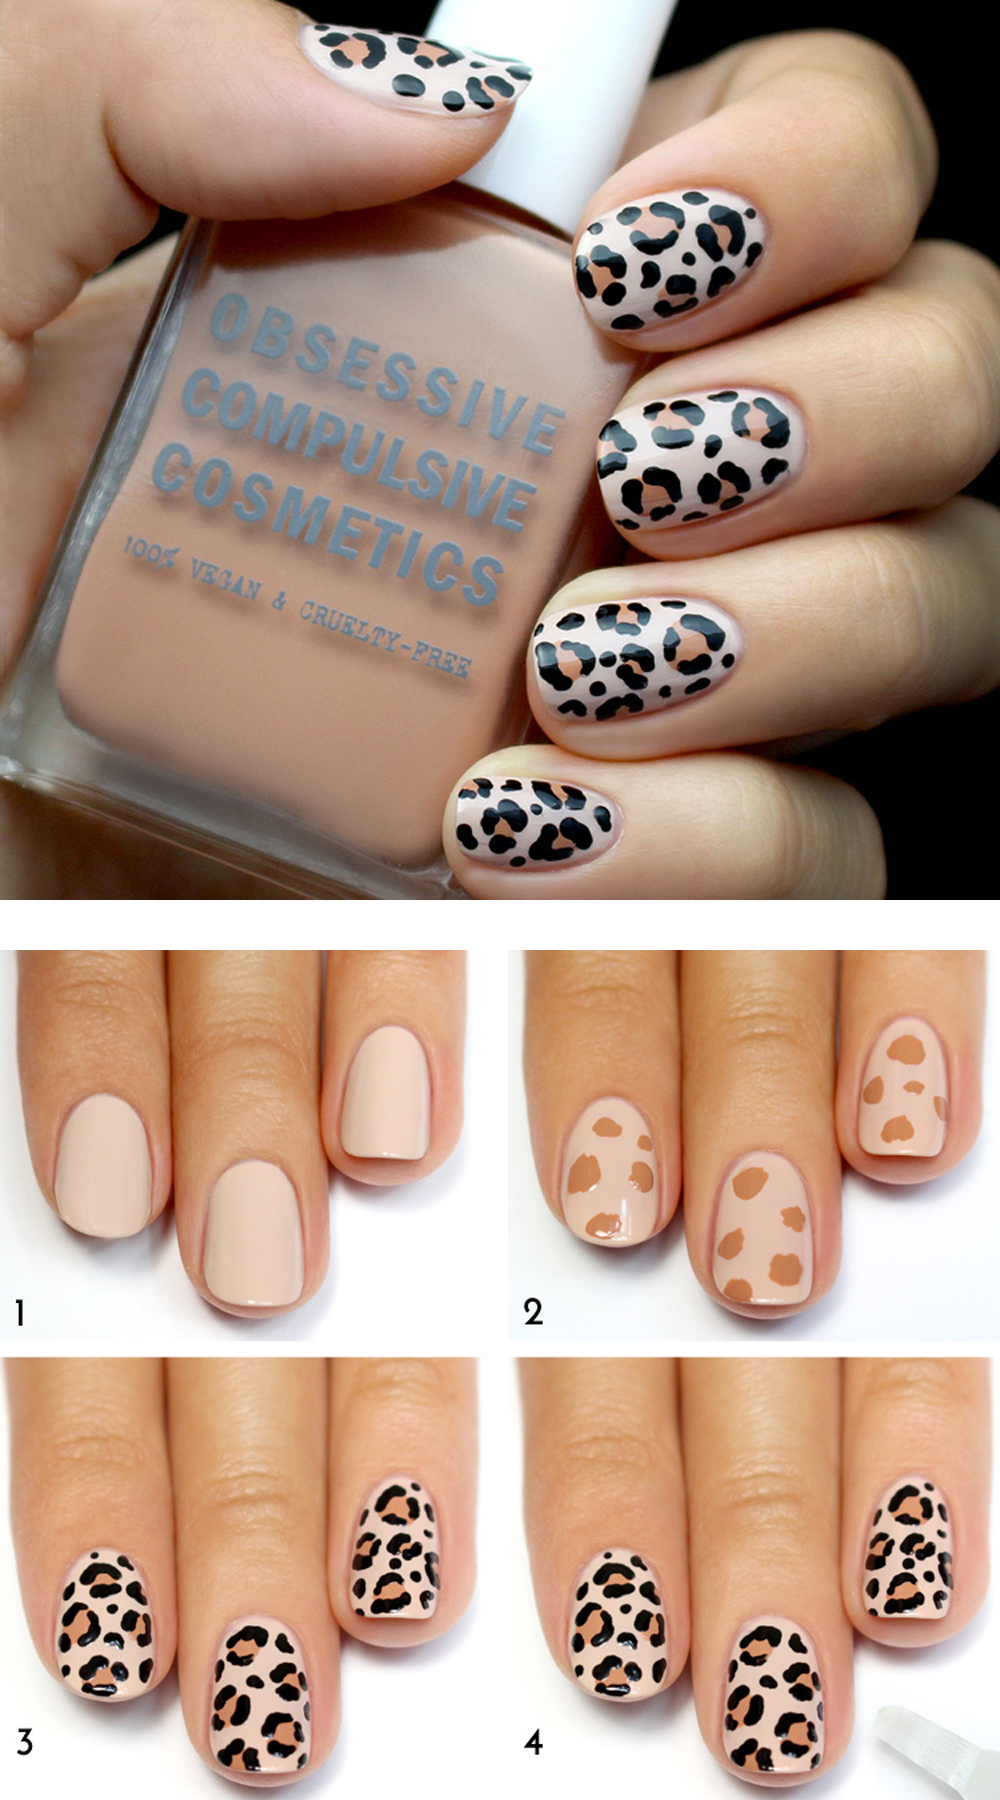 This chic nail art is easy to recreate with just a bit of will and  patience. Aren't the end results fabulous? The younger crowd will love this  animal ... - 25 Easy Nail Art Designs (Tutorials) For Beginners - 2019 Update